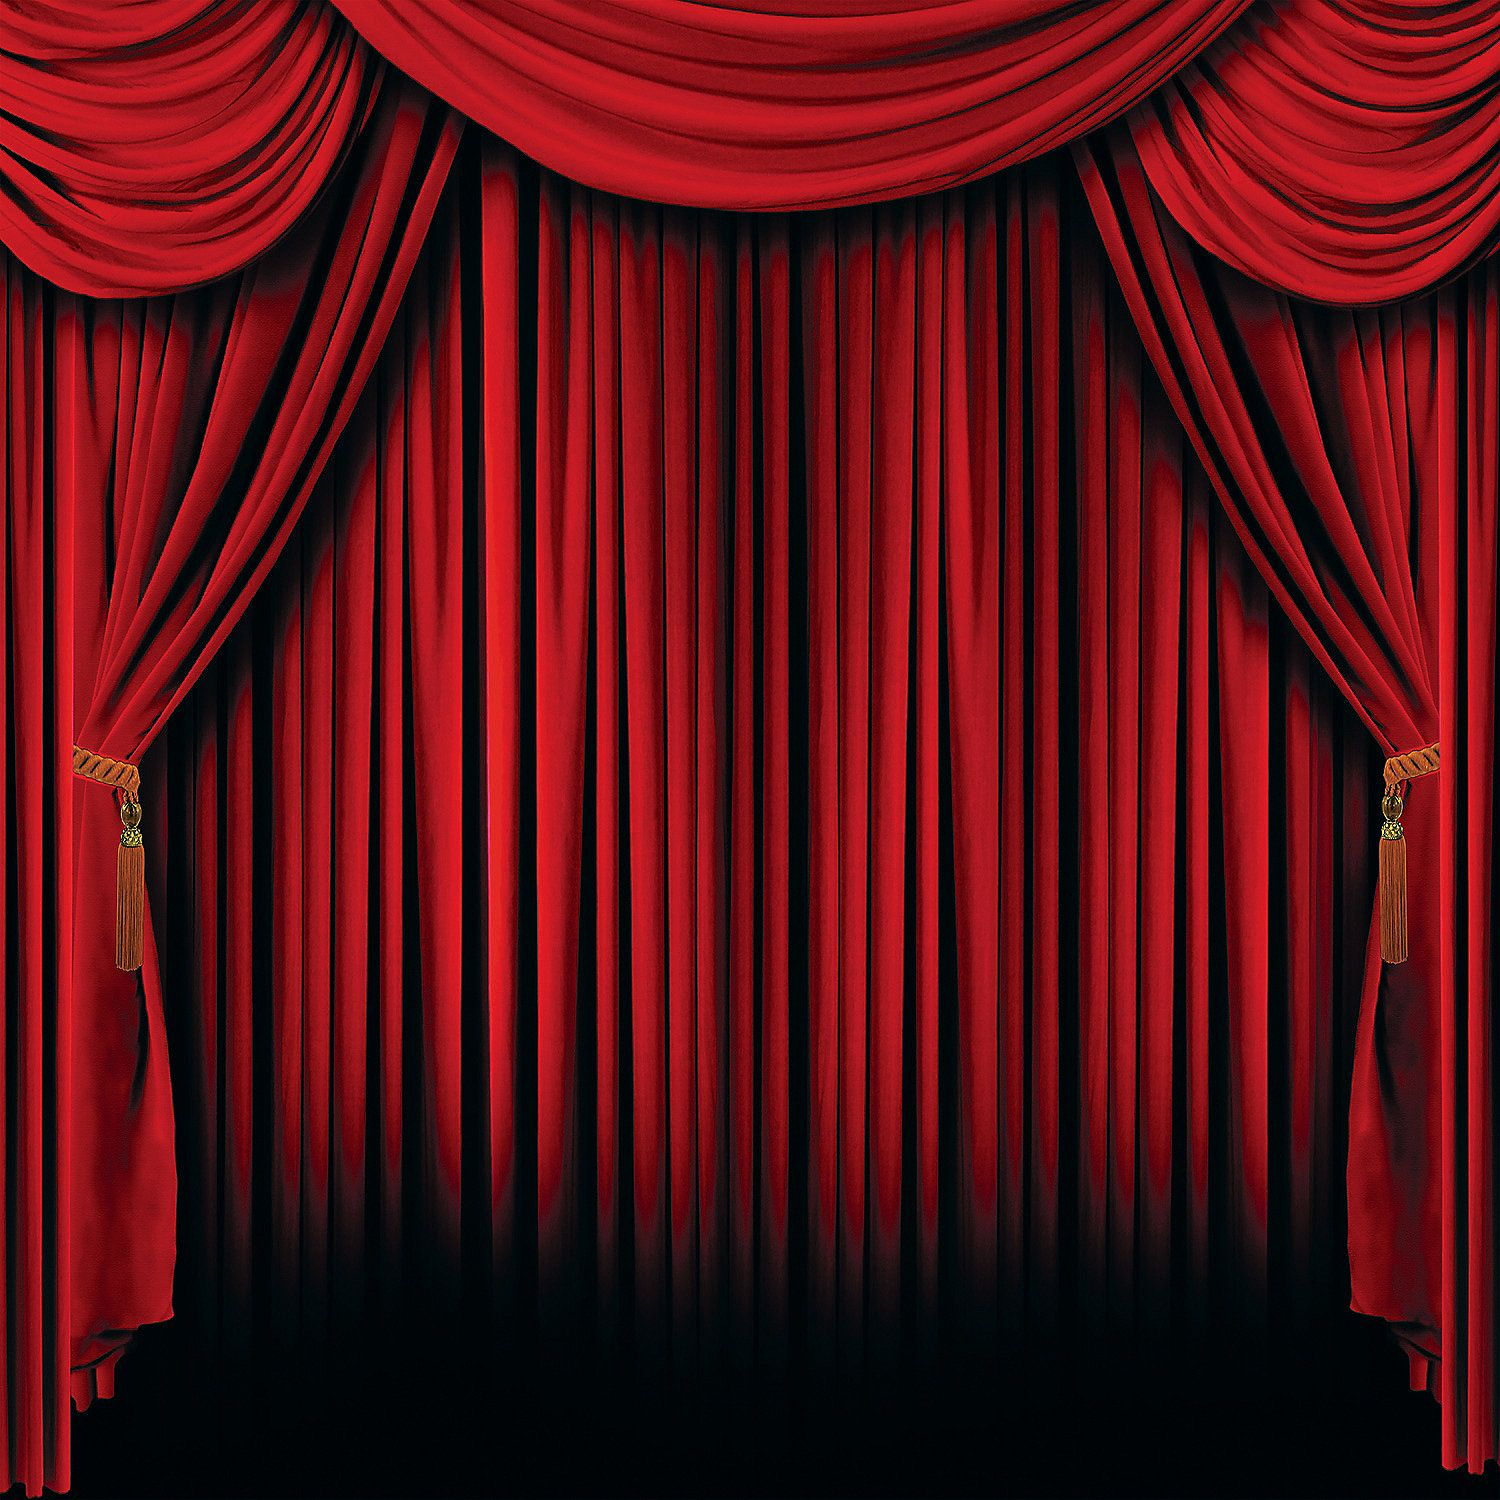 Red stage curtain photo